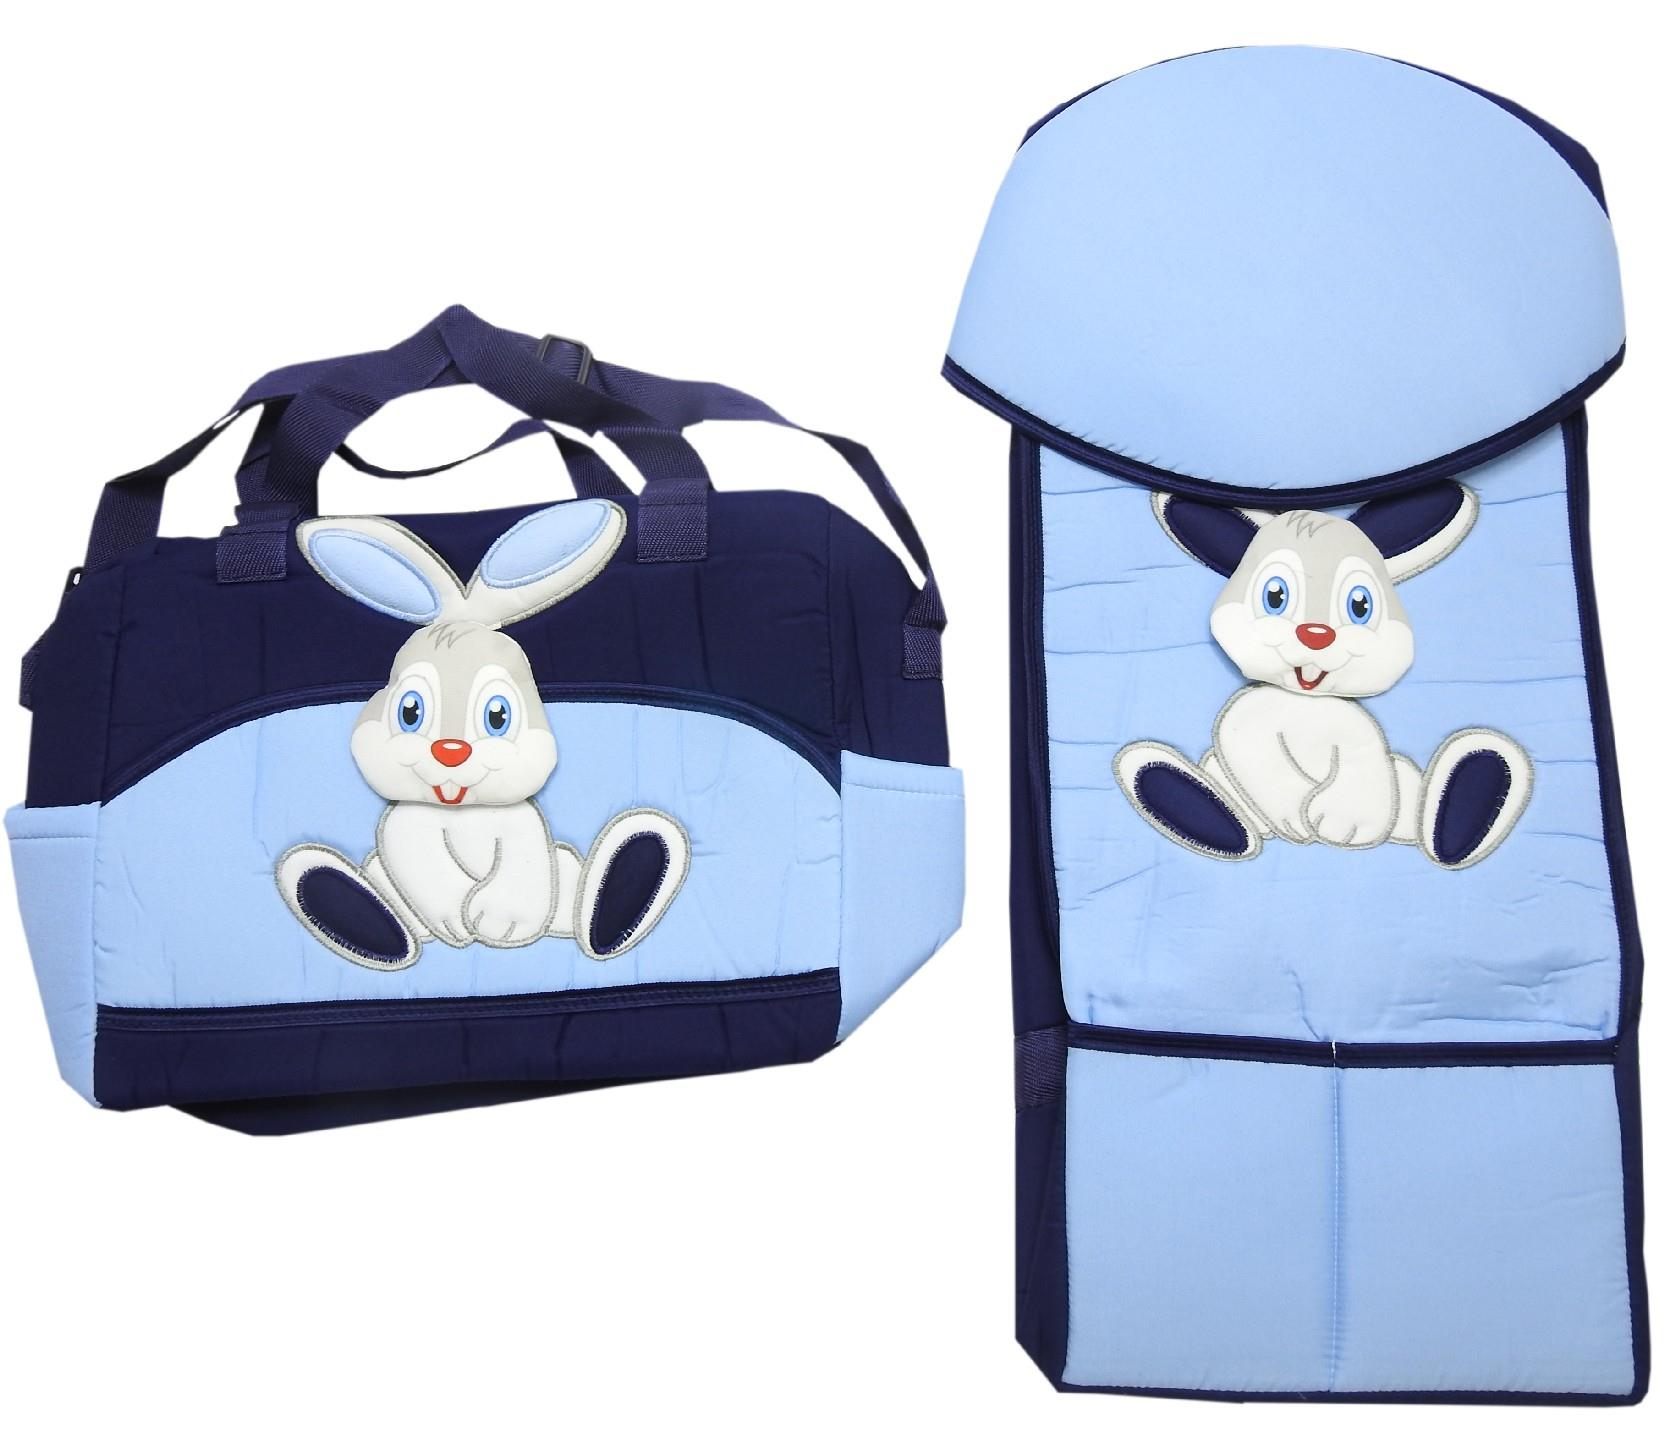 wholesale rabbit printed care bag and carrycot for baby